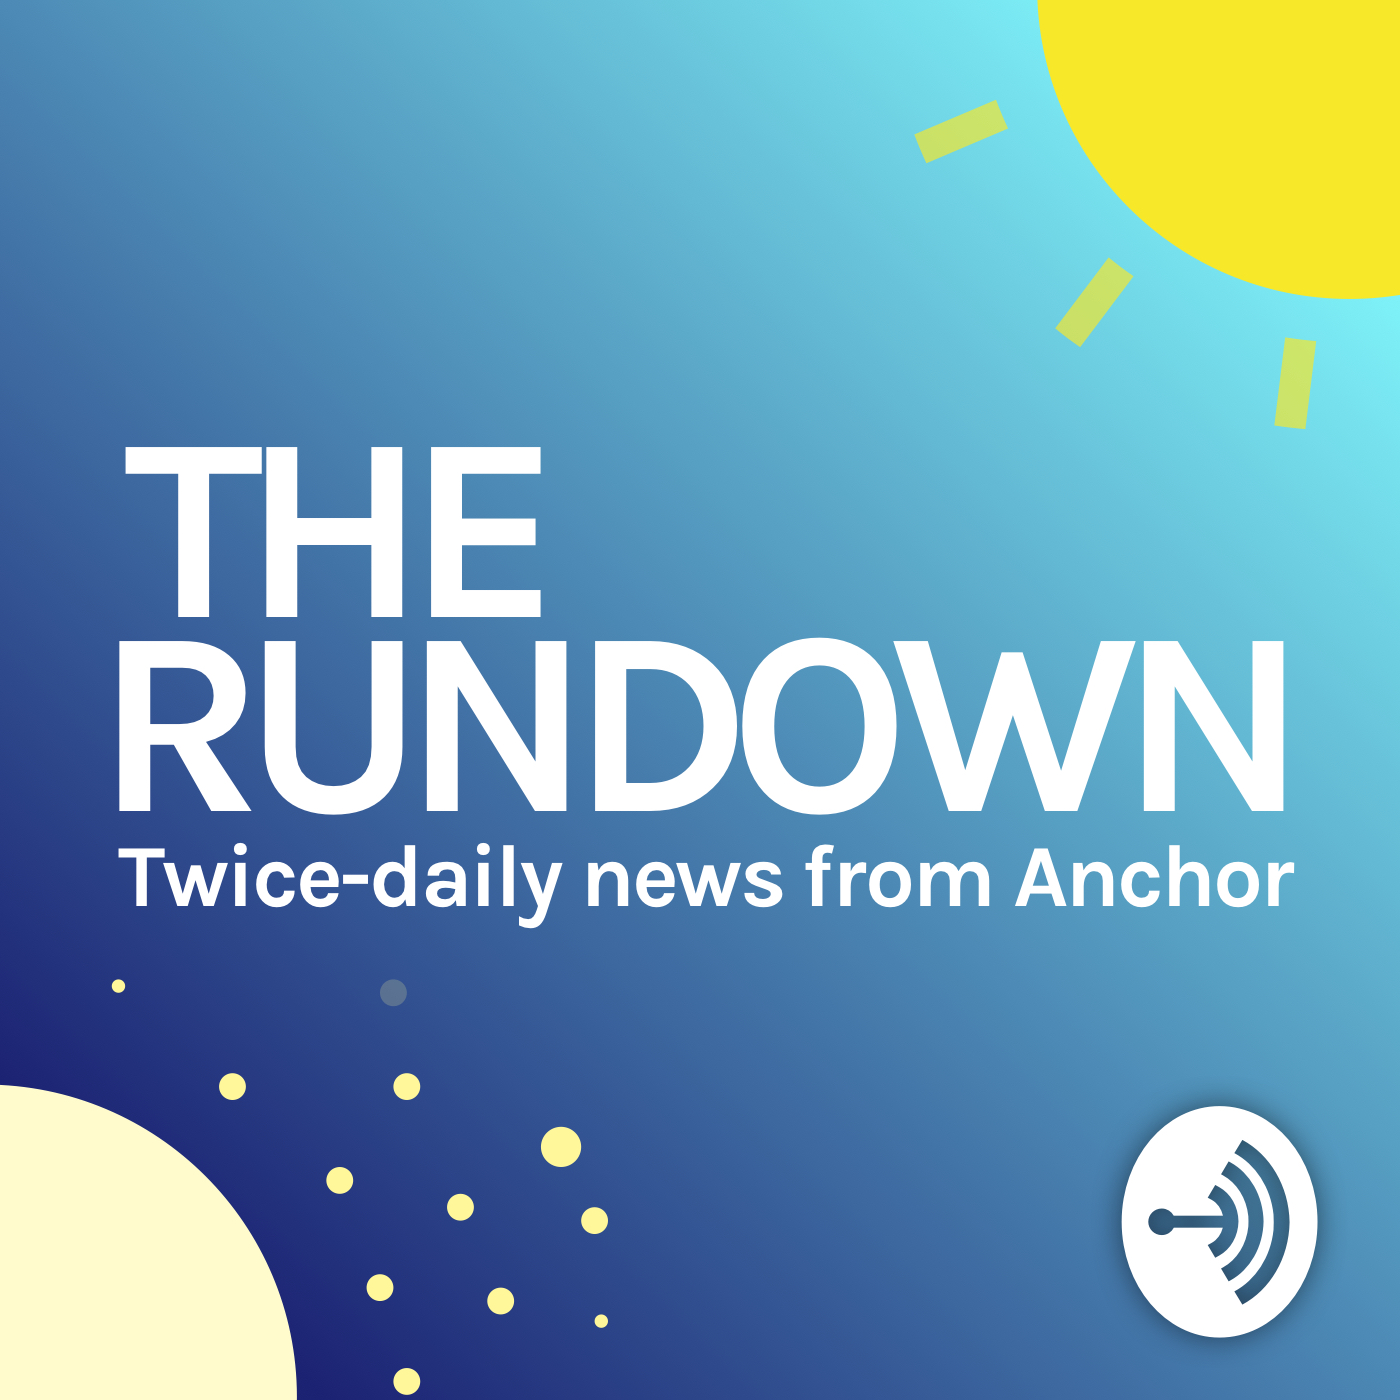 The Rundown - Twice-daily news from Anchor